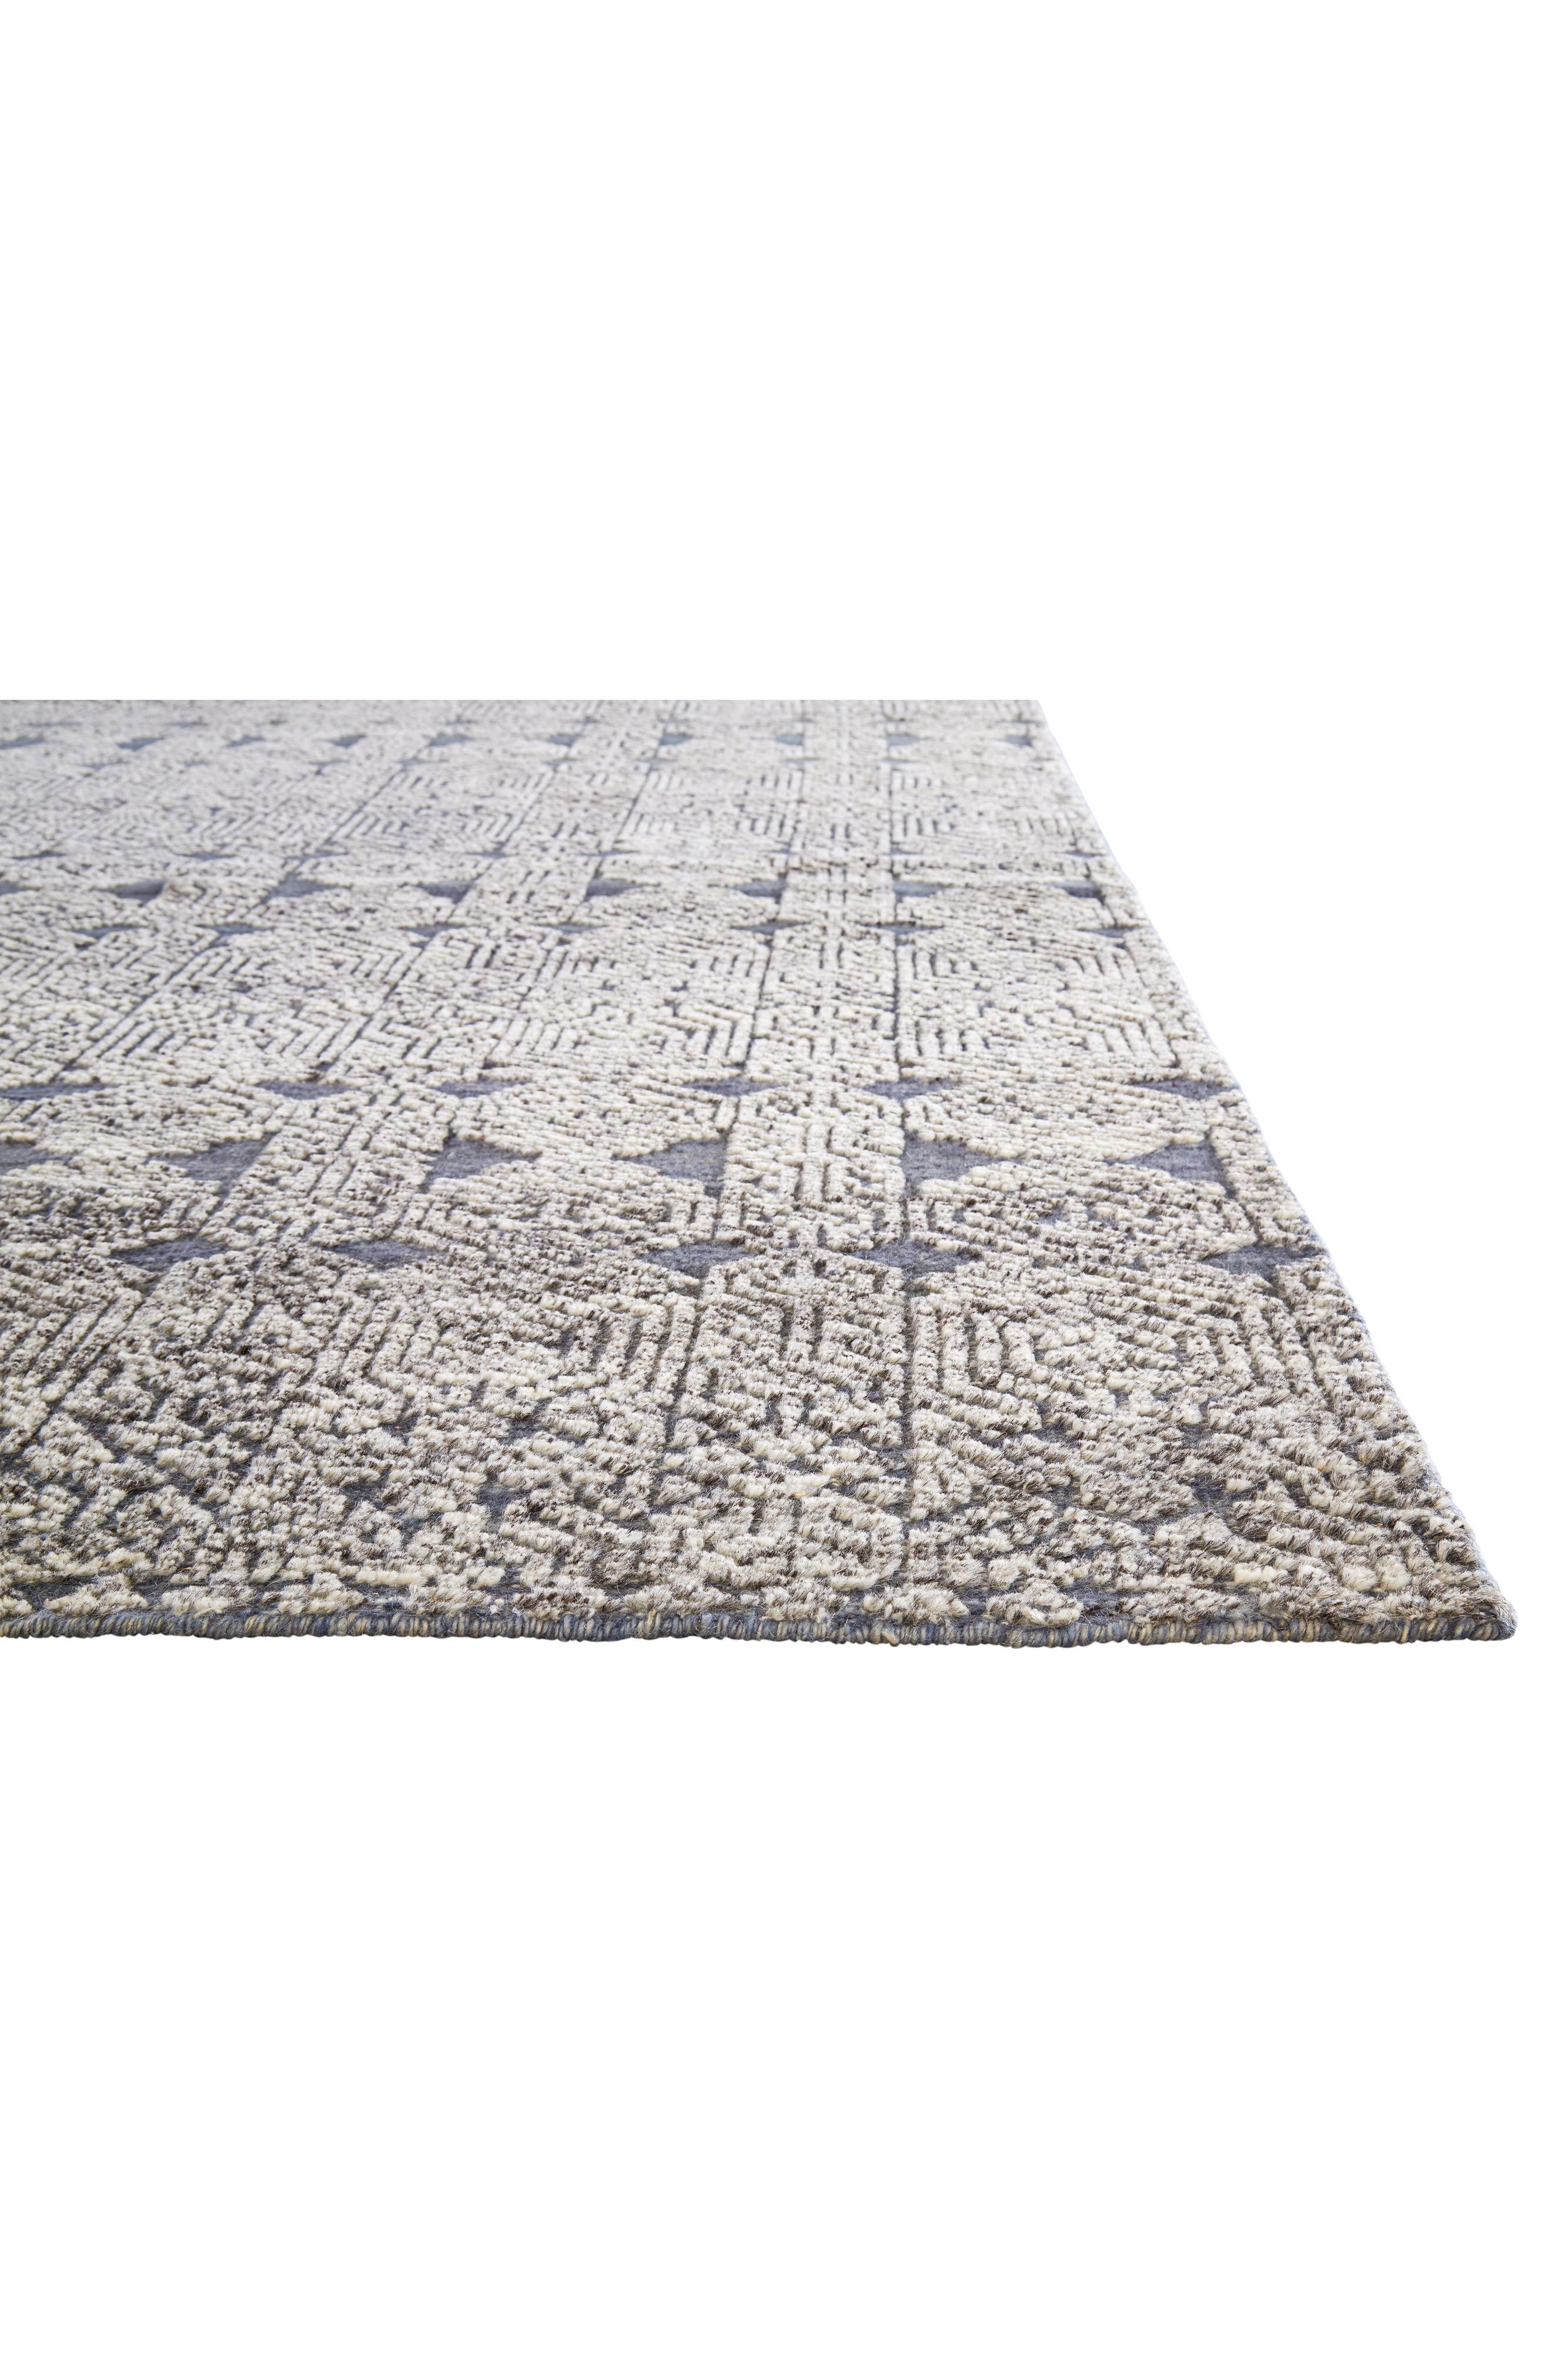 Festival Rug,                             Alternate thumbnail 2, color,                             Grey/ Silver